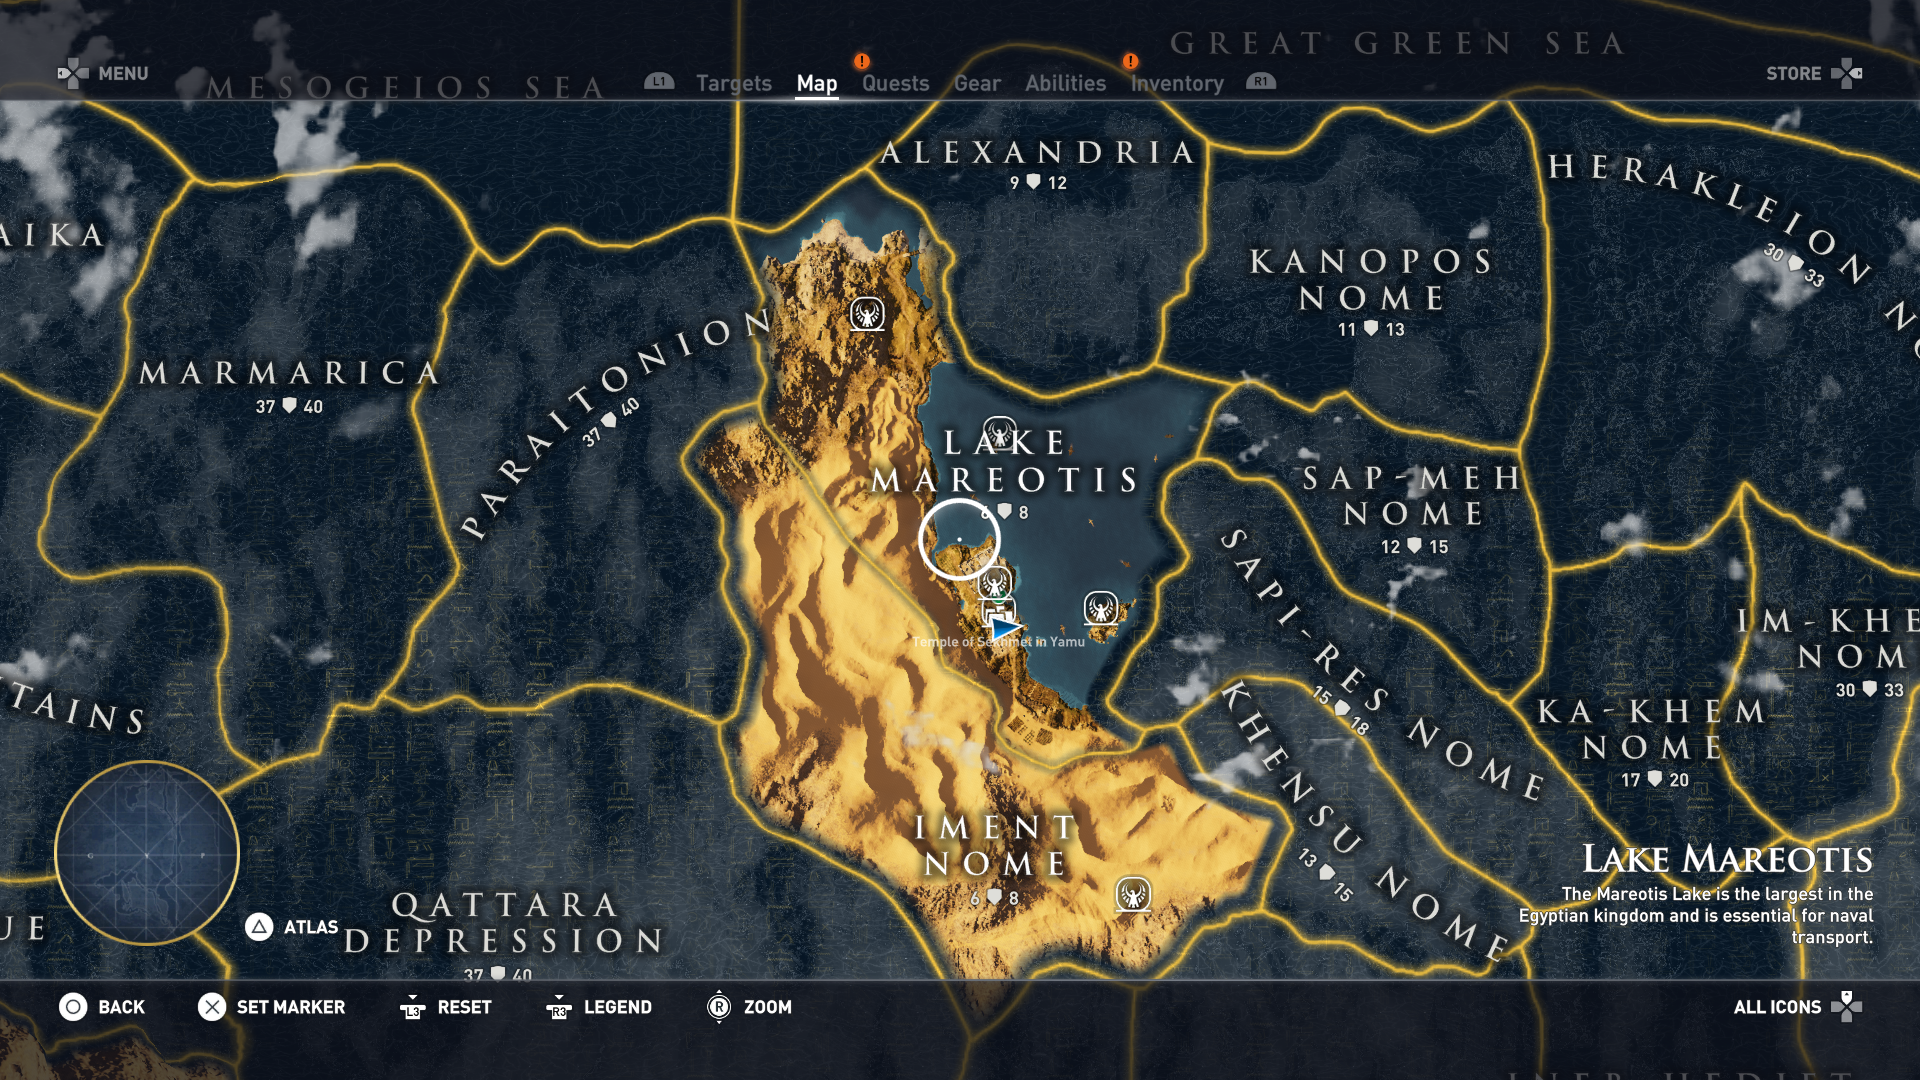 Each region has a level range, and leveling up high enough to hit some of the later regions took a long time.